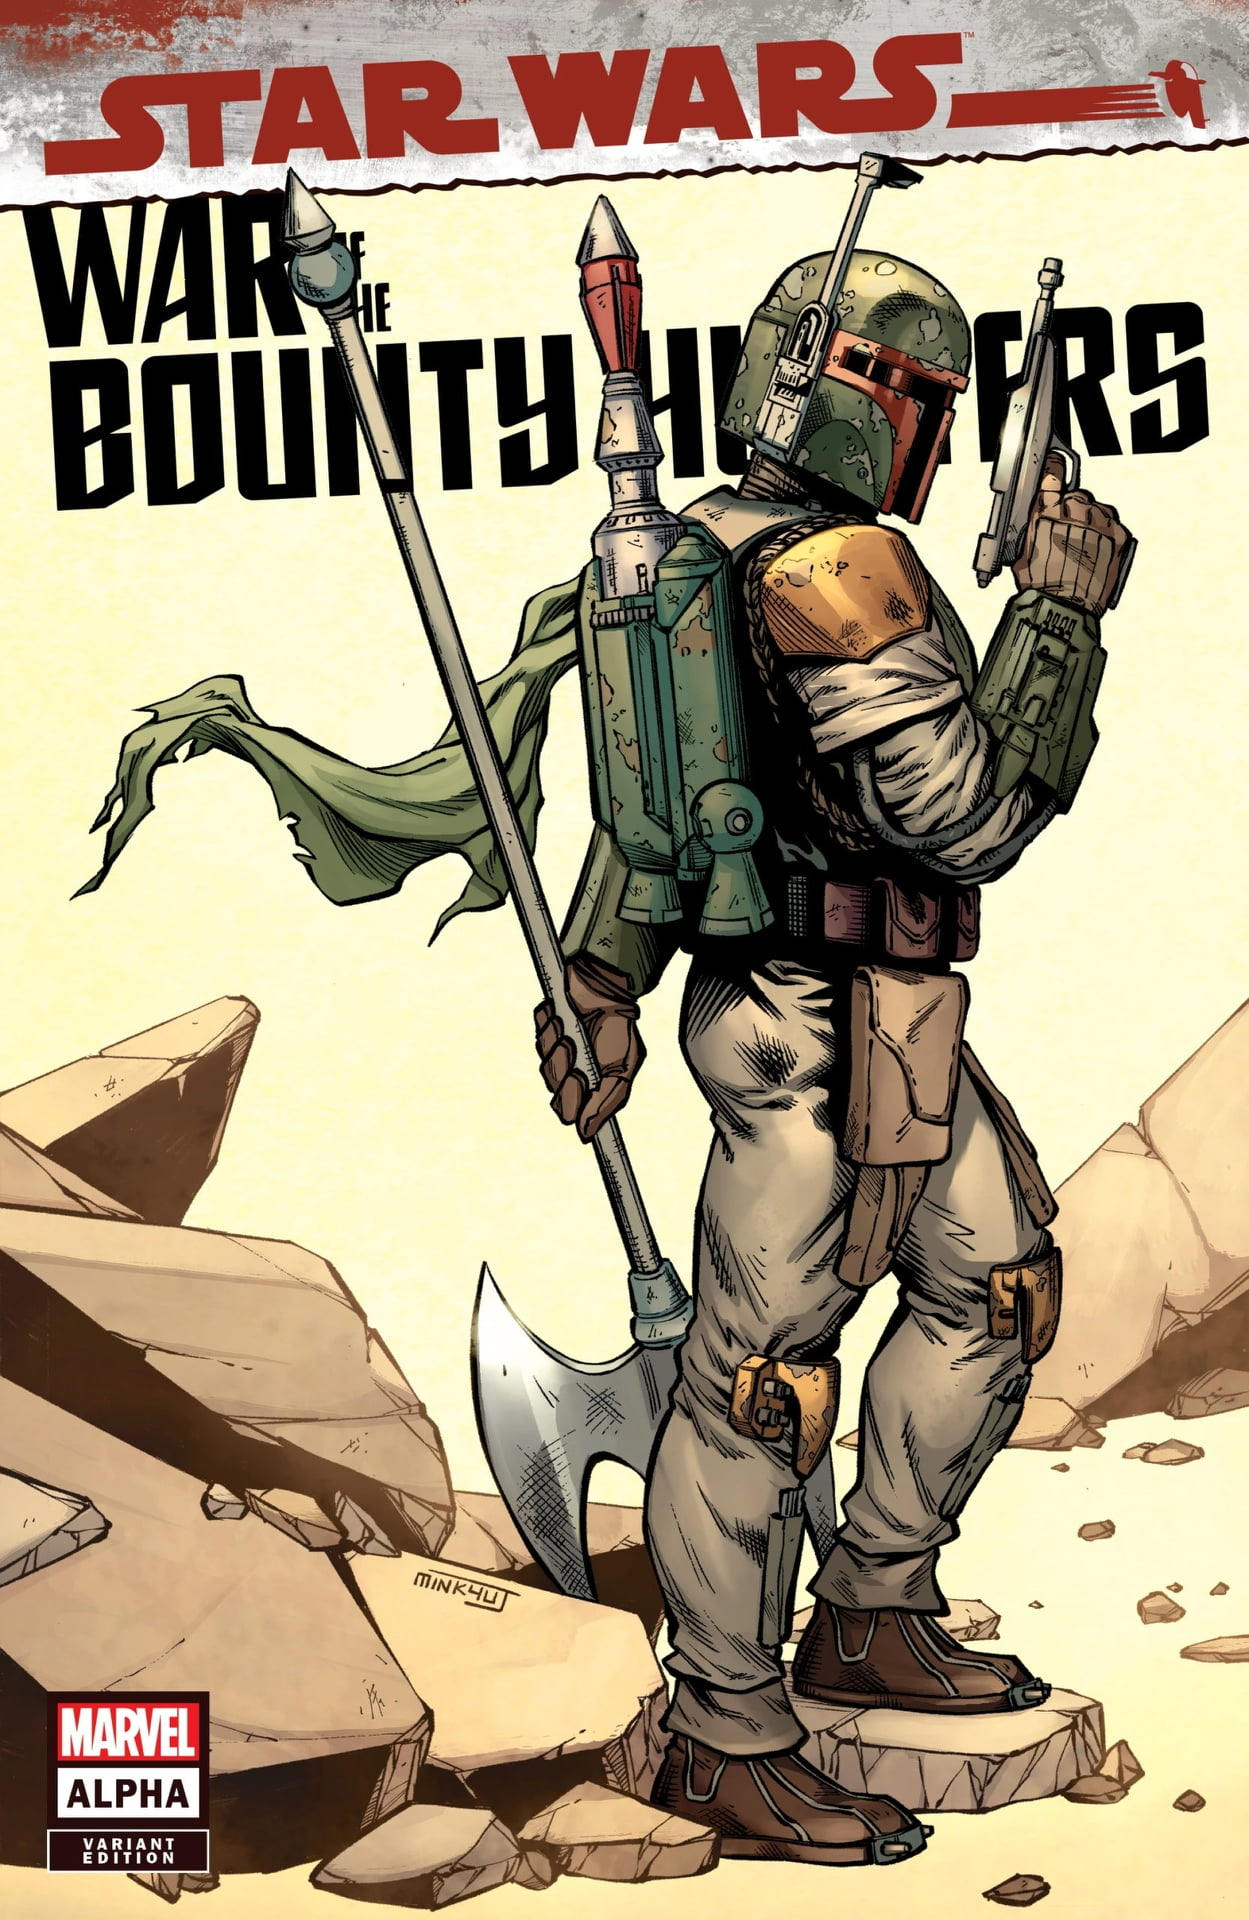 Star Wars: War of the Bounty Hunters Alpha - Comic Kingdom Variant